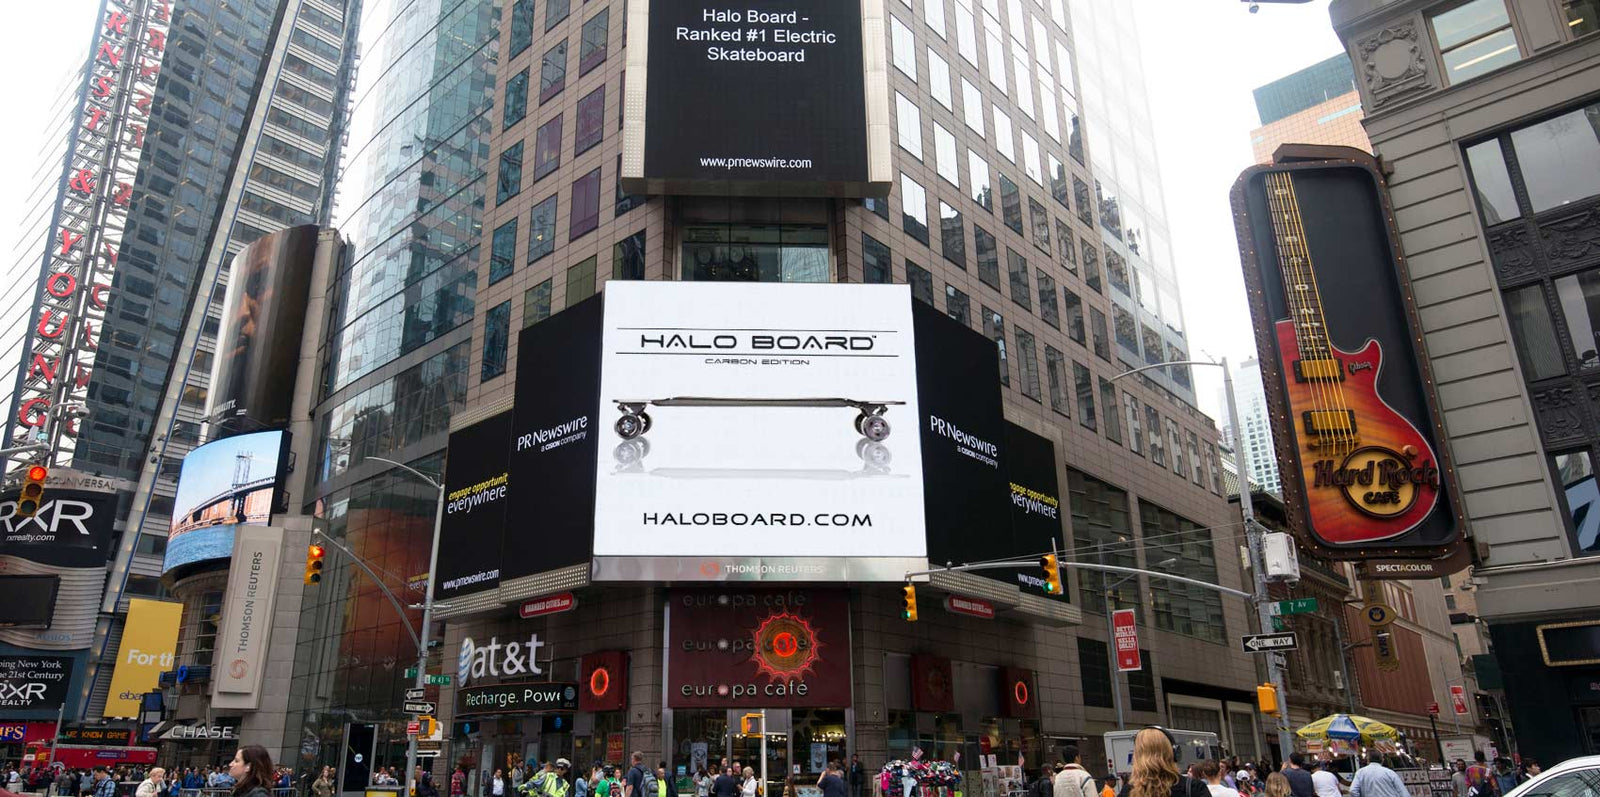 Halo Board Featured in New York Times Square